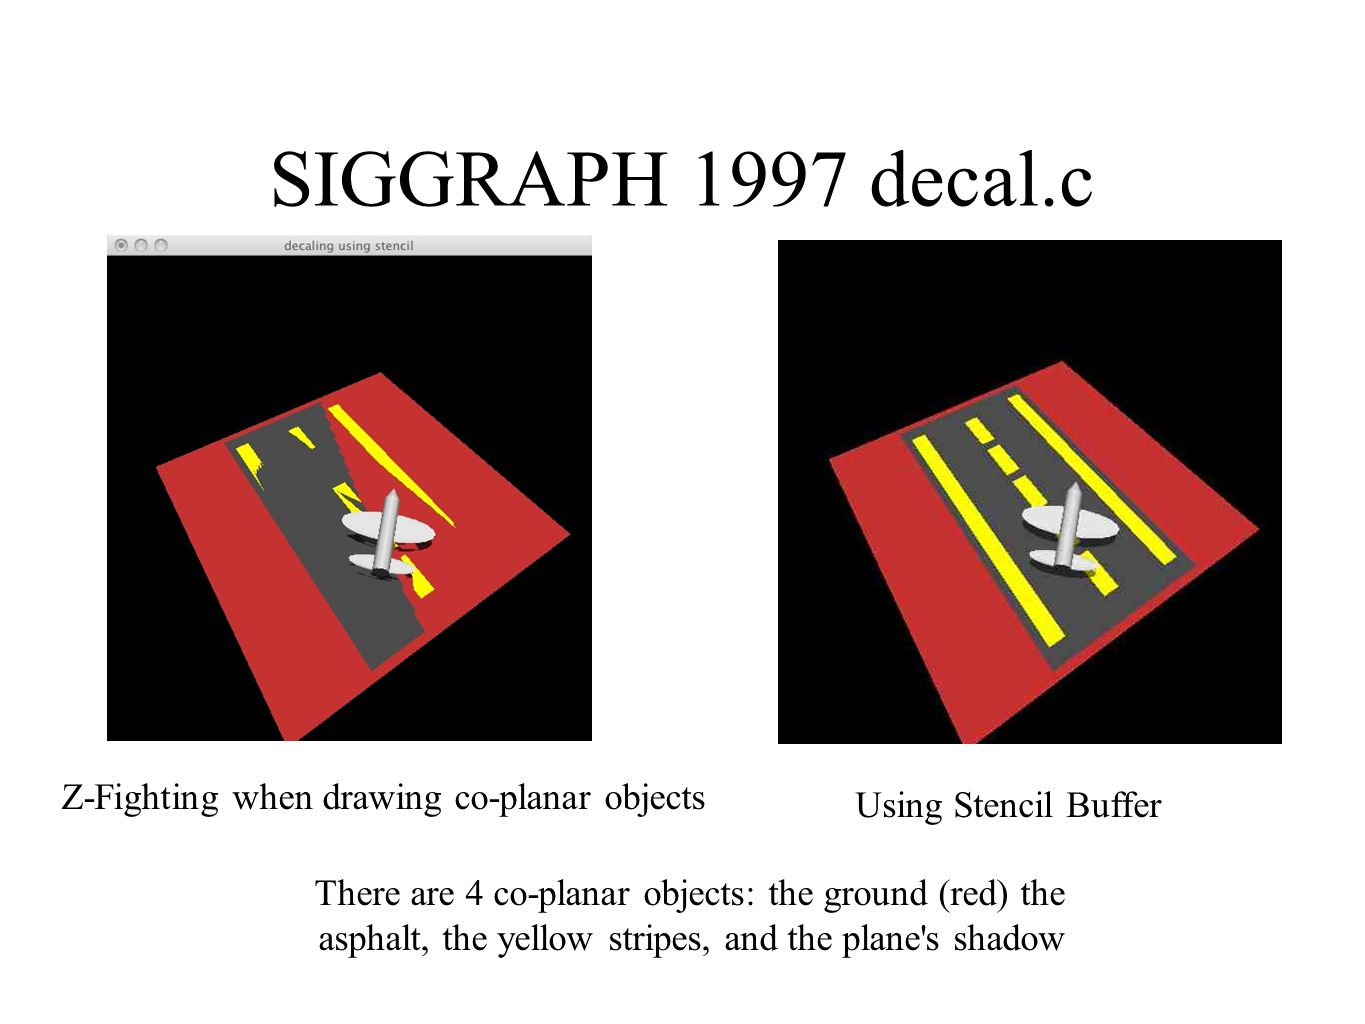 SIGGRAPH 1997 decal.c Z-Fighting when drawing co-planar objects Using Stencil Buffer There are 4 co-planar objects: the ground (red) the asphalt, the